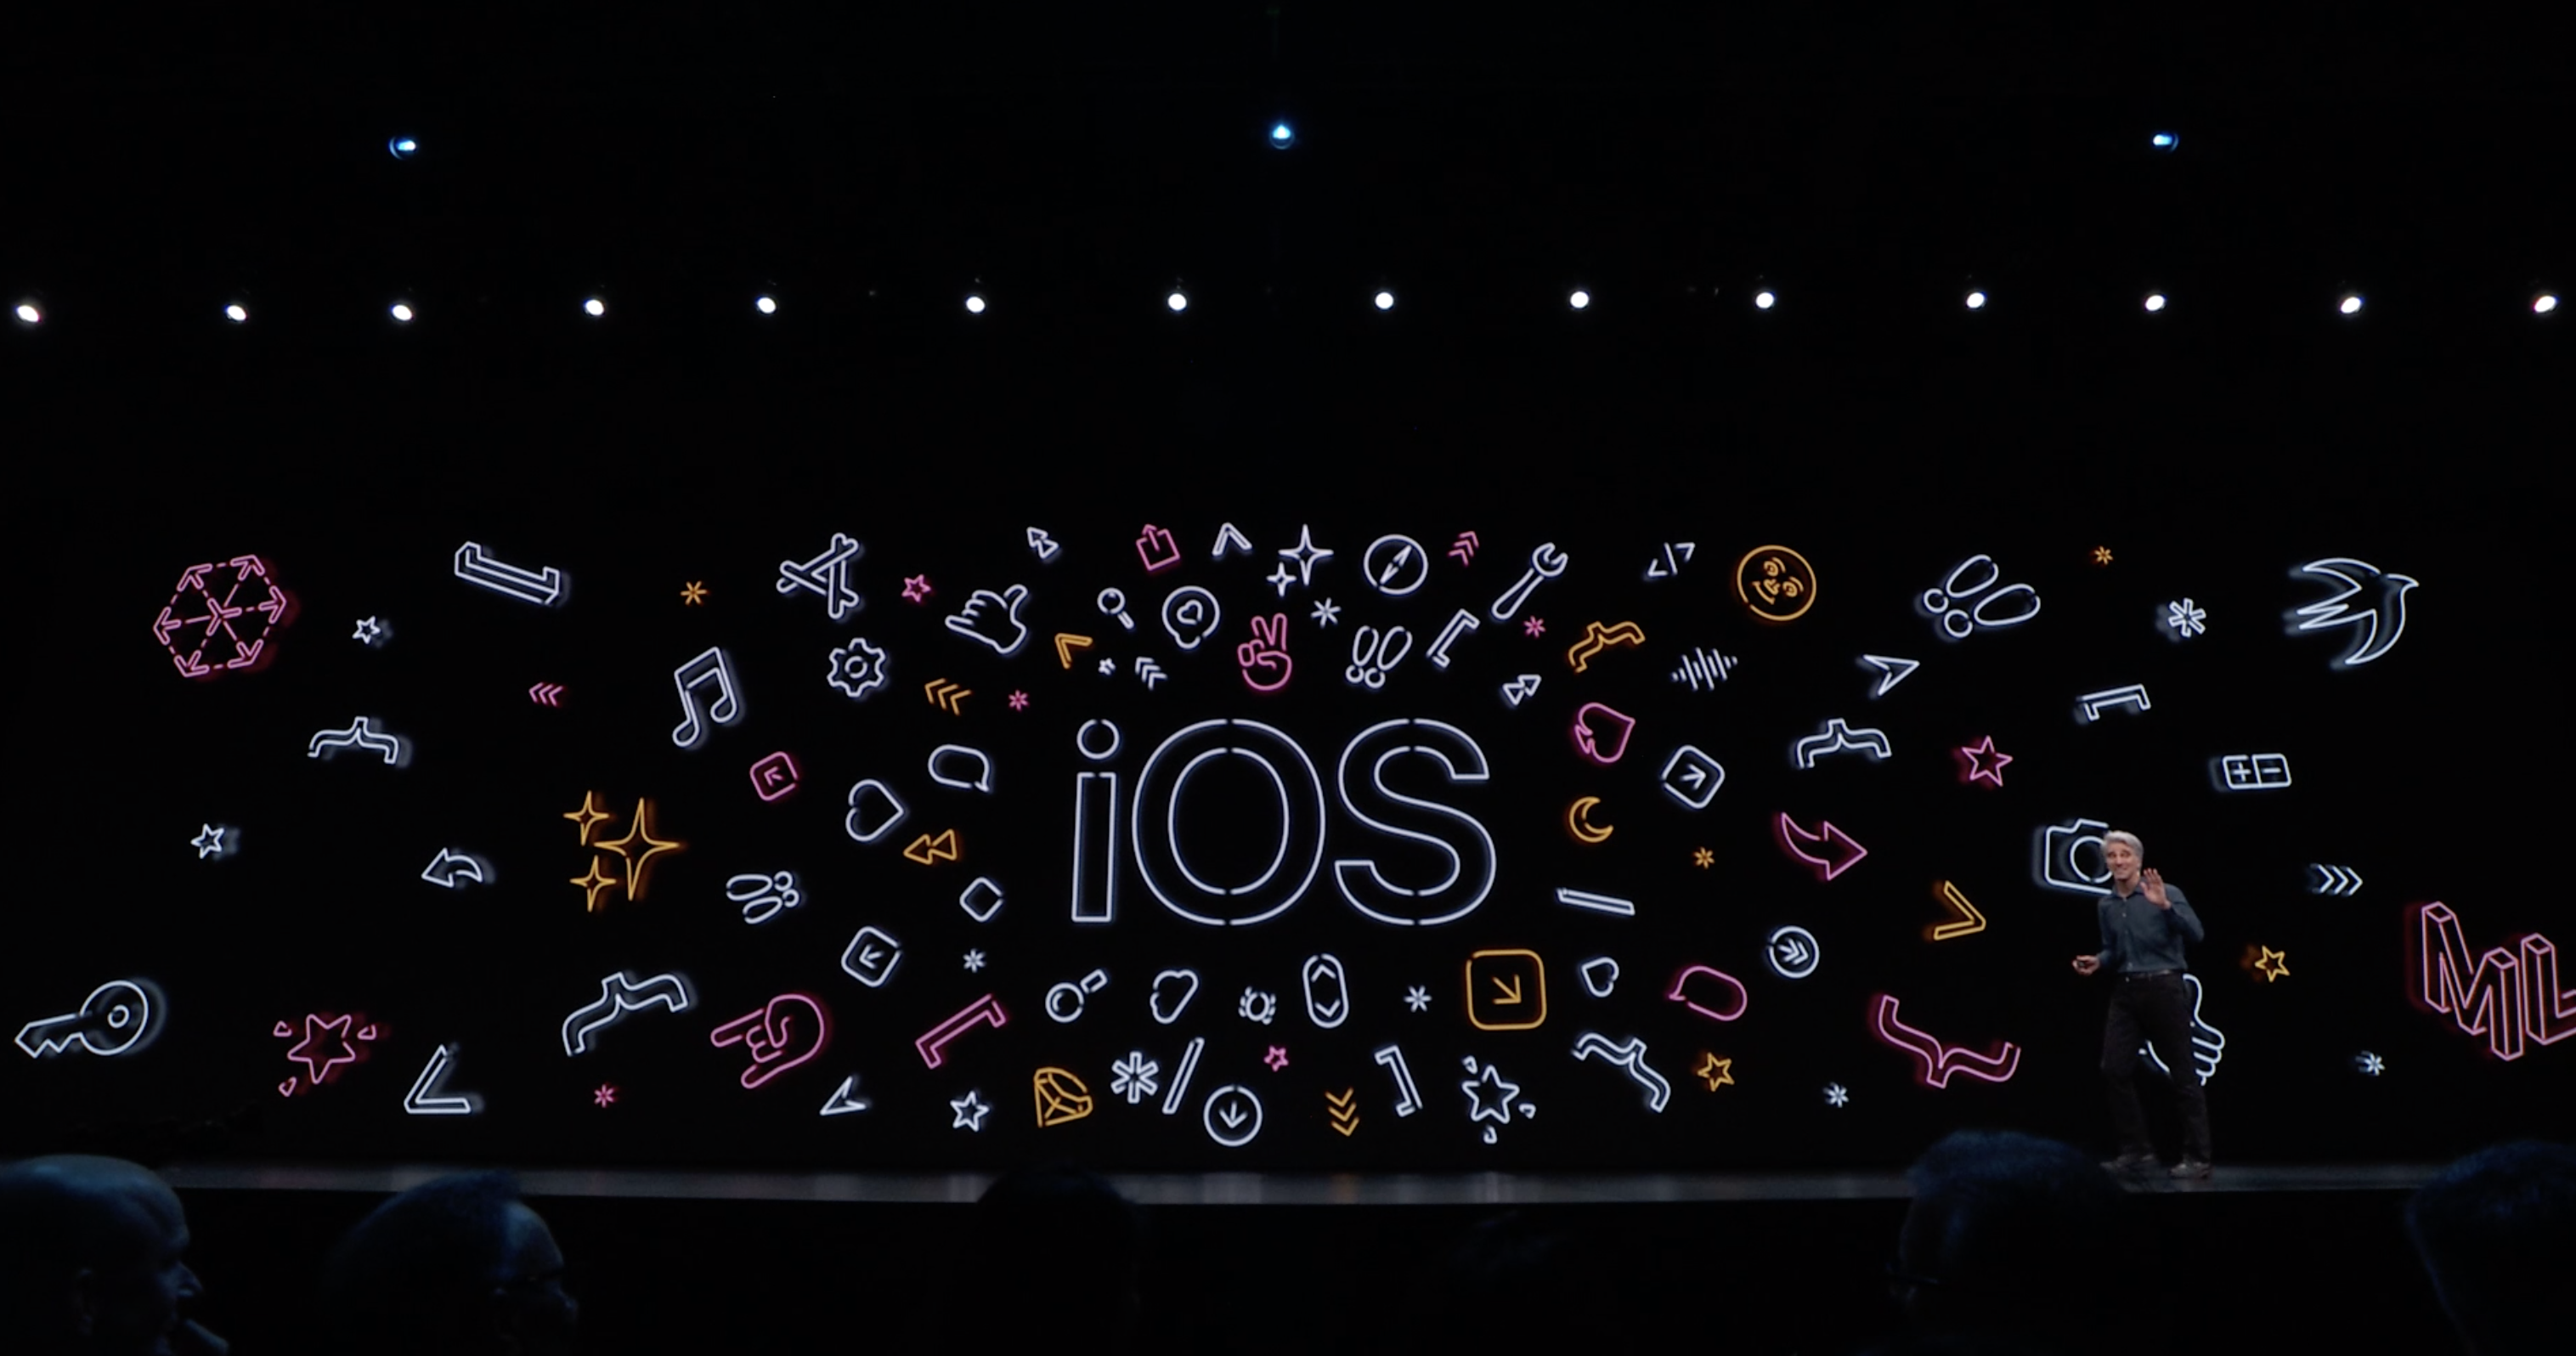 Apple officially unveils iOS 13 for iPhone at WWDC 2019 with